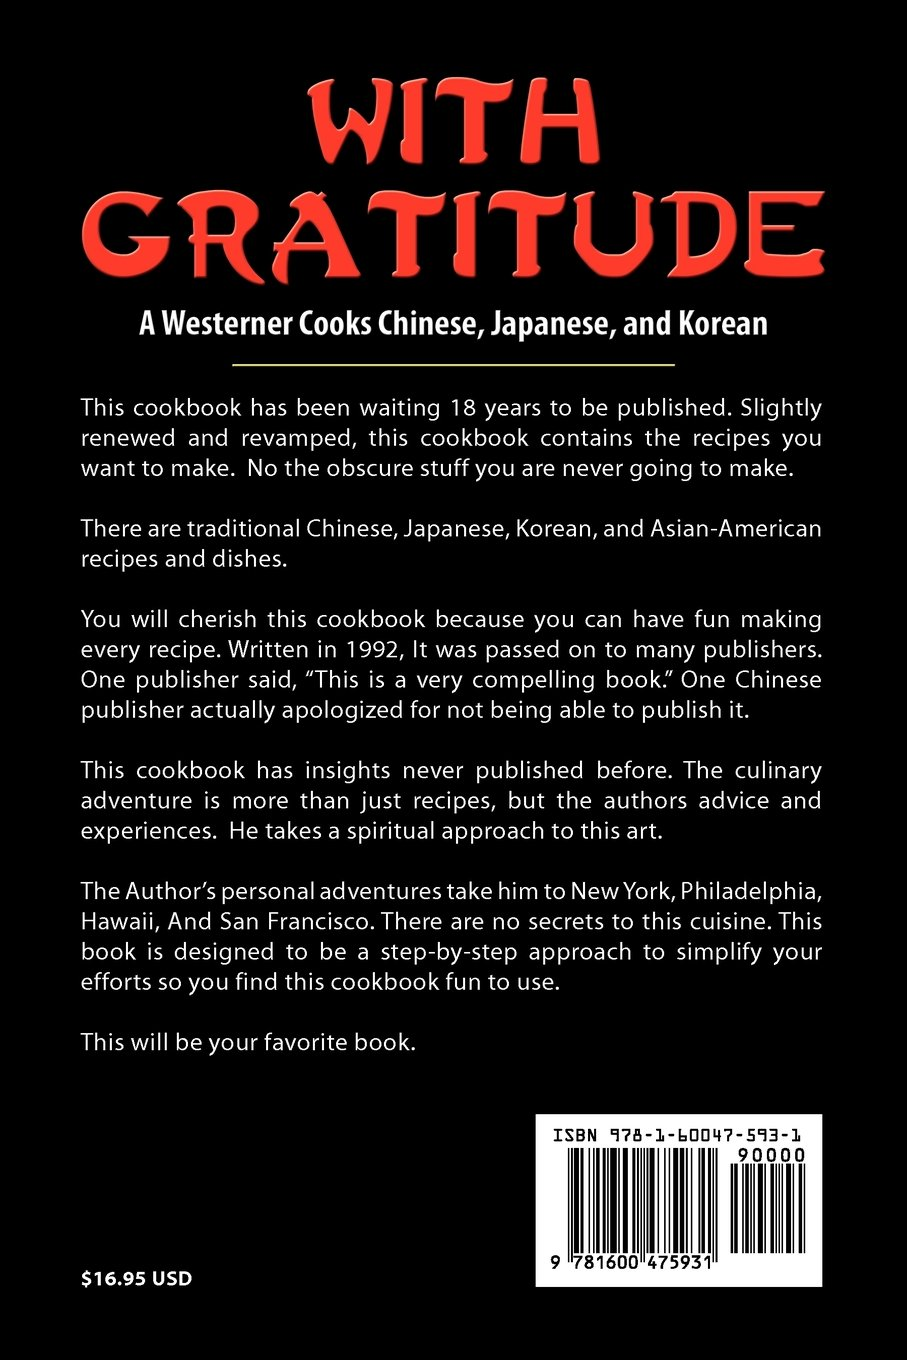 With Gratitude: A Westerner Cooks Chinese, Japanese, and Korean